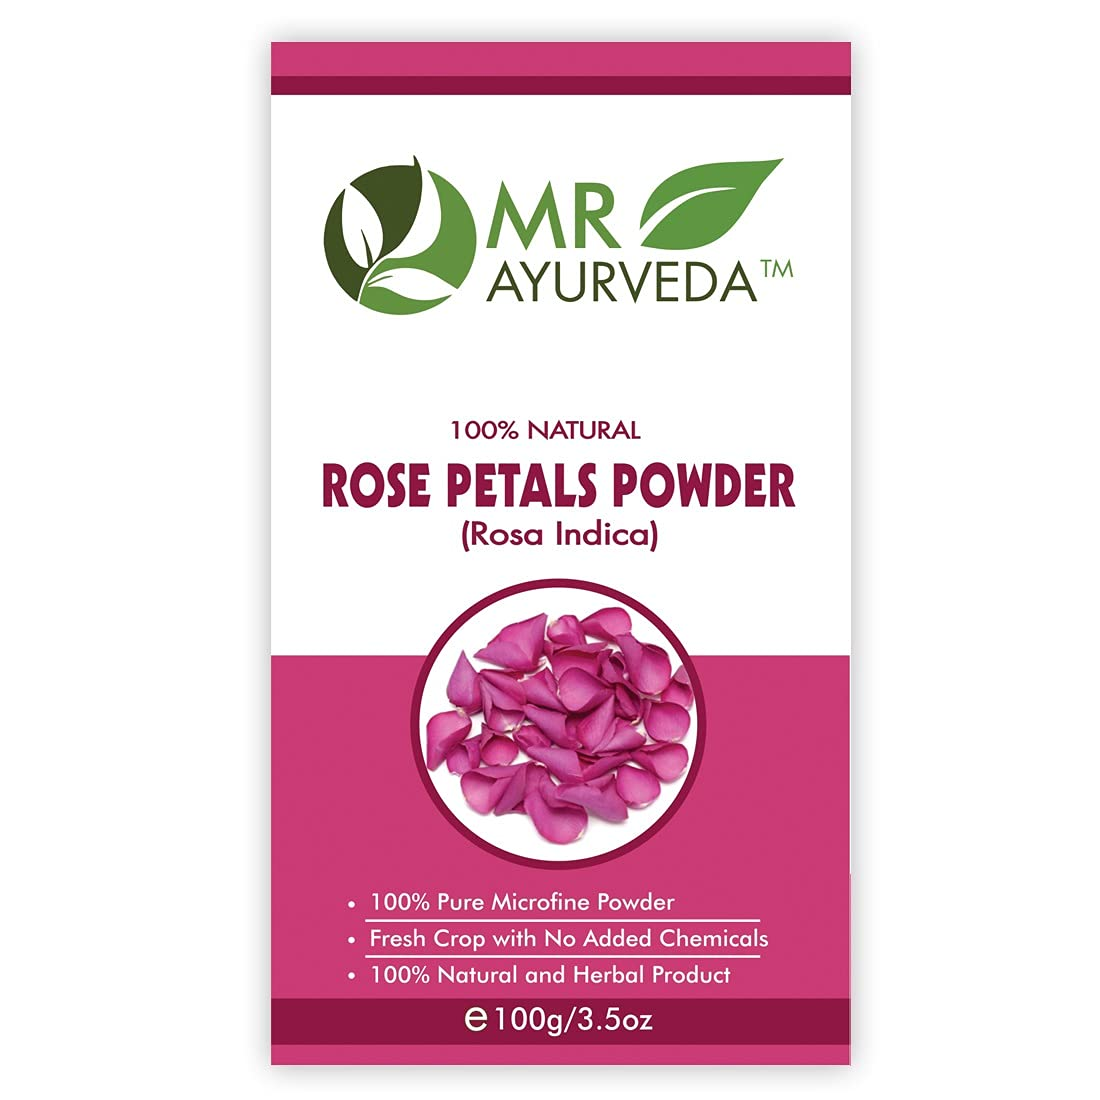 Girlistan - Want to stay young? Use rose petals in beauty treatments every day